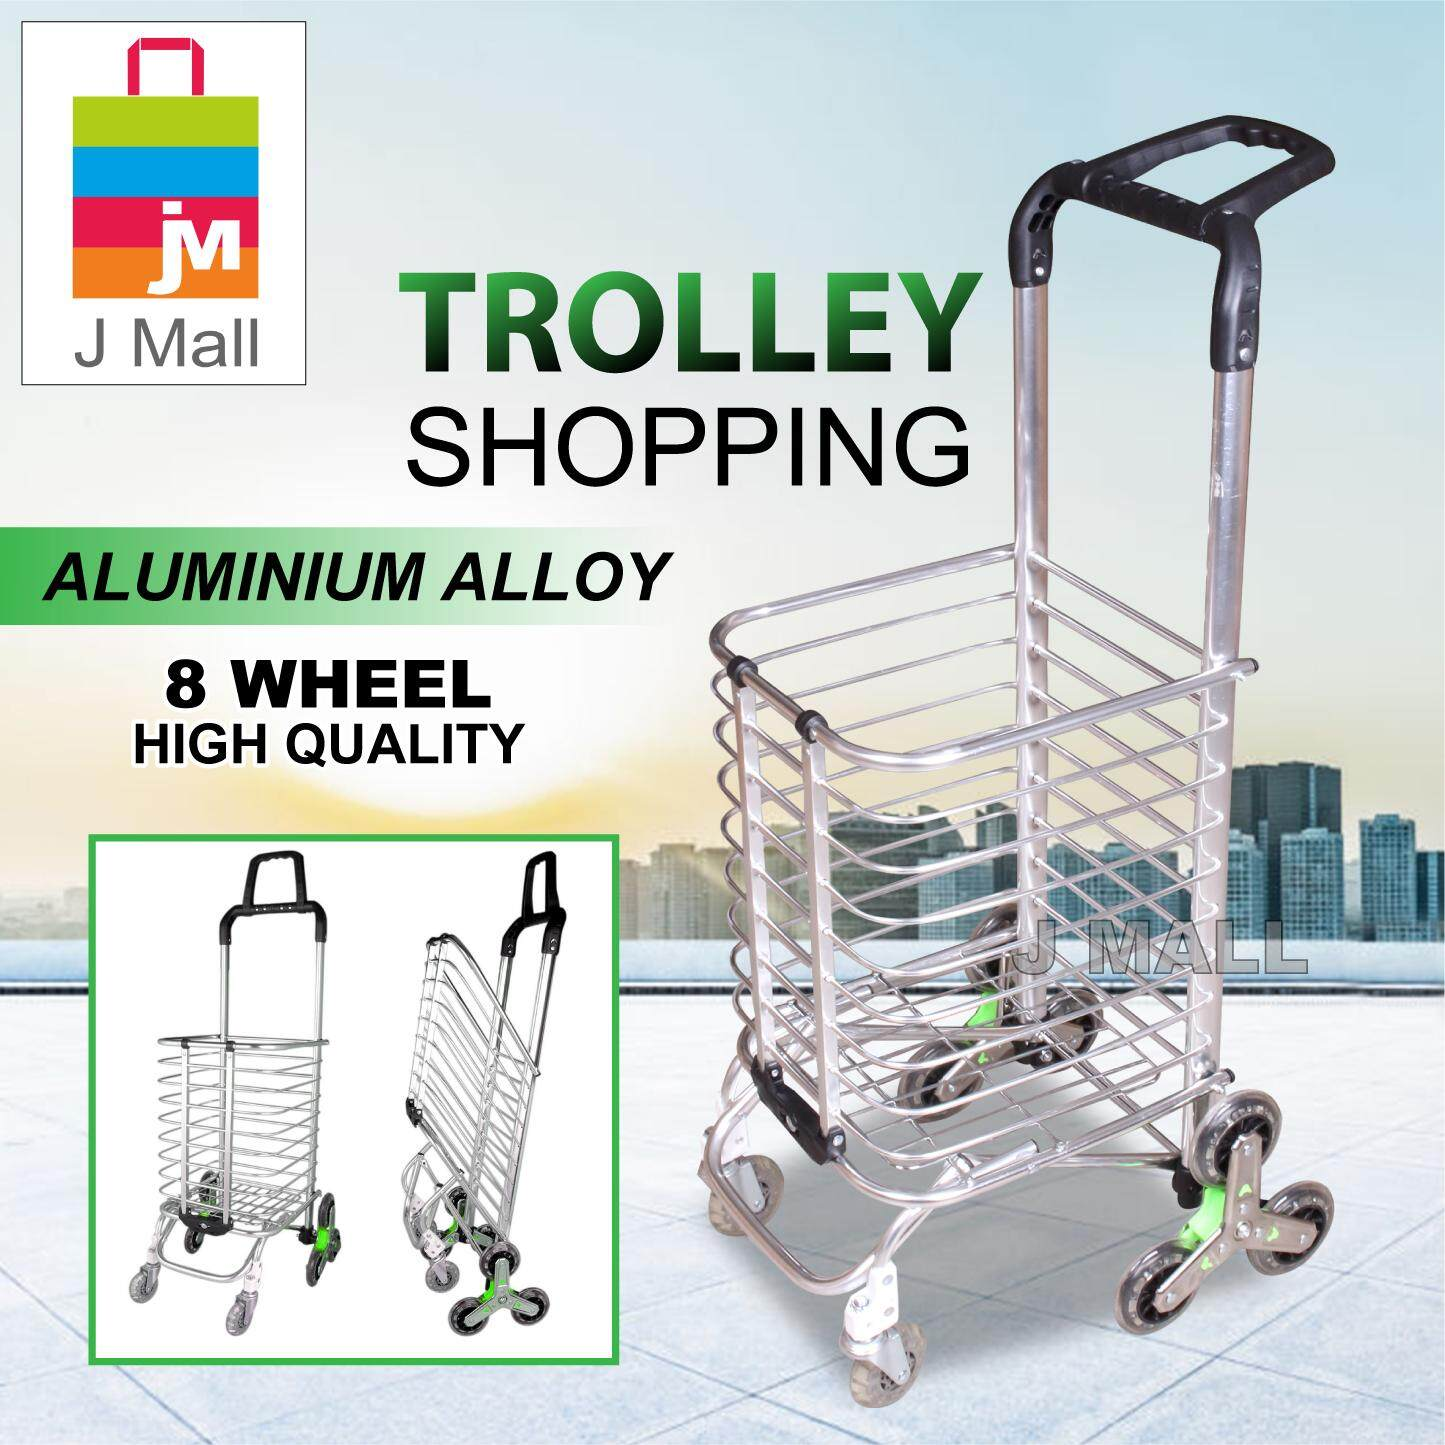 8 Wheel High Quality Foldable Shopping Grocery Trolley Multi Functions By J Mall.